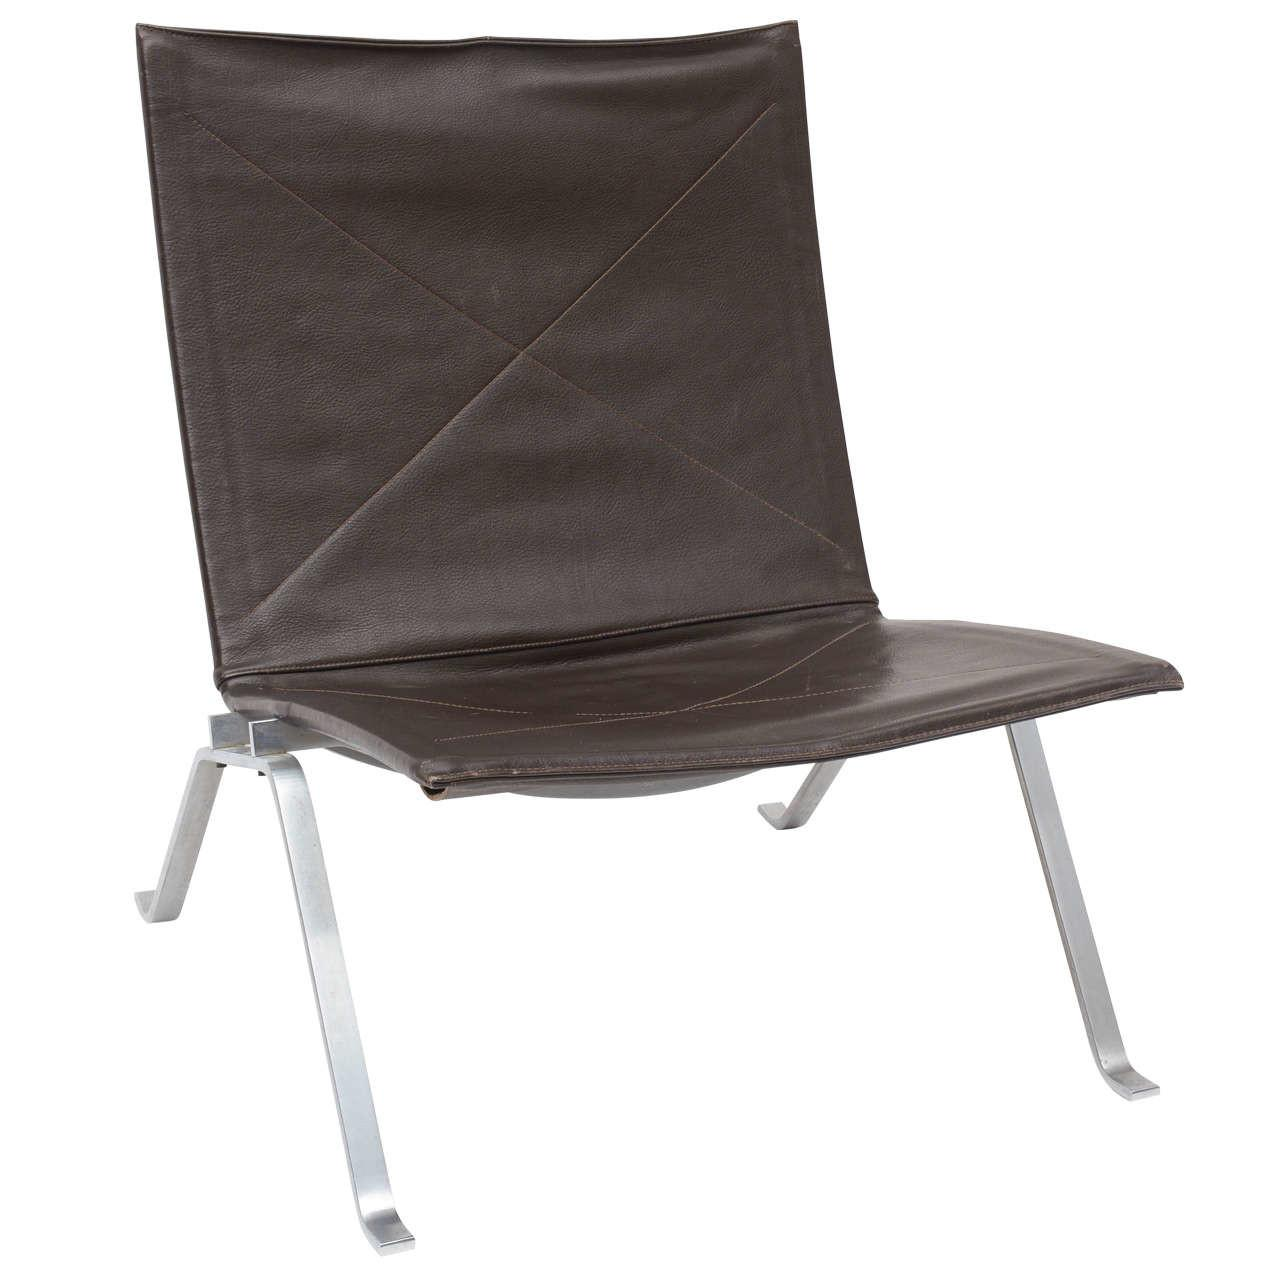 Poul Kjaerholm Lounge Chair 1stdibs